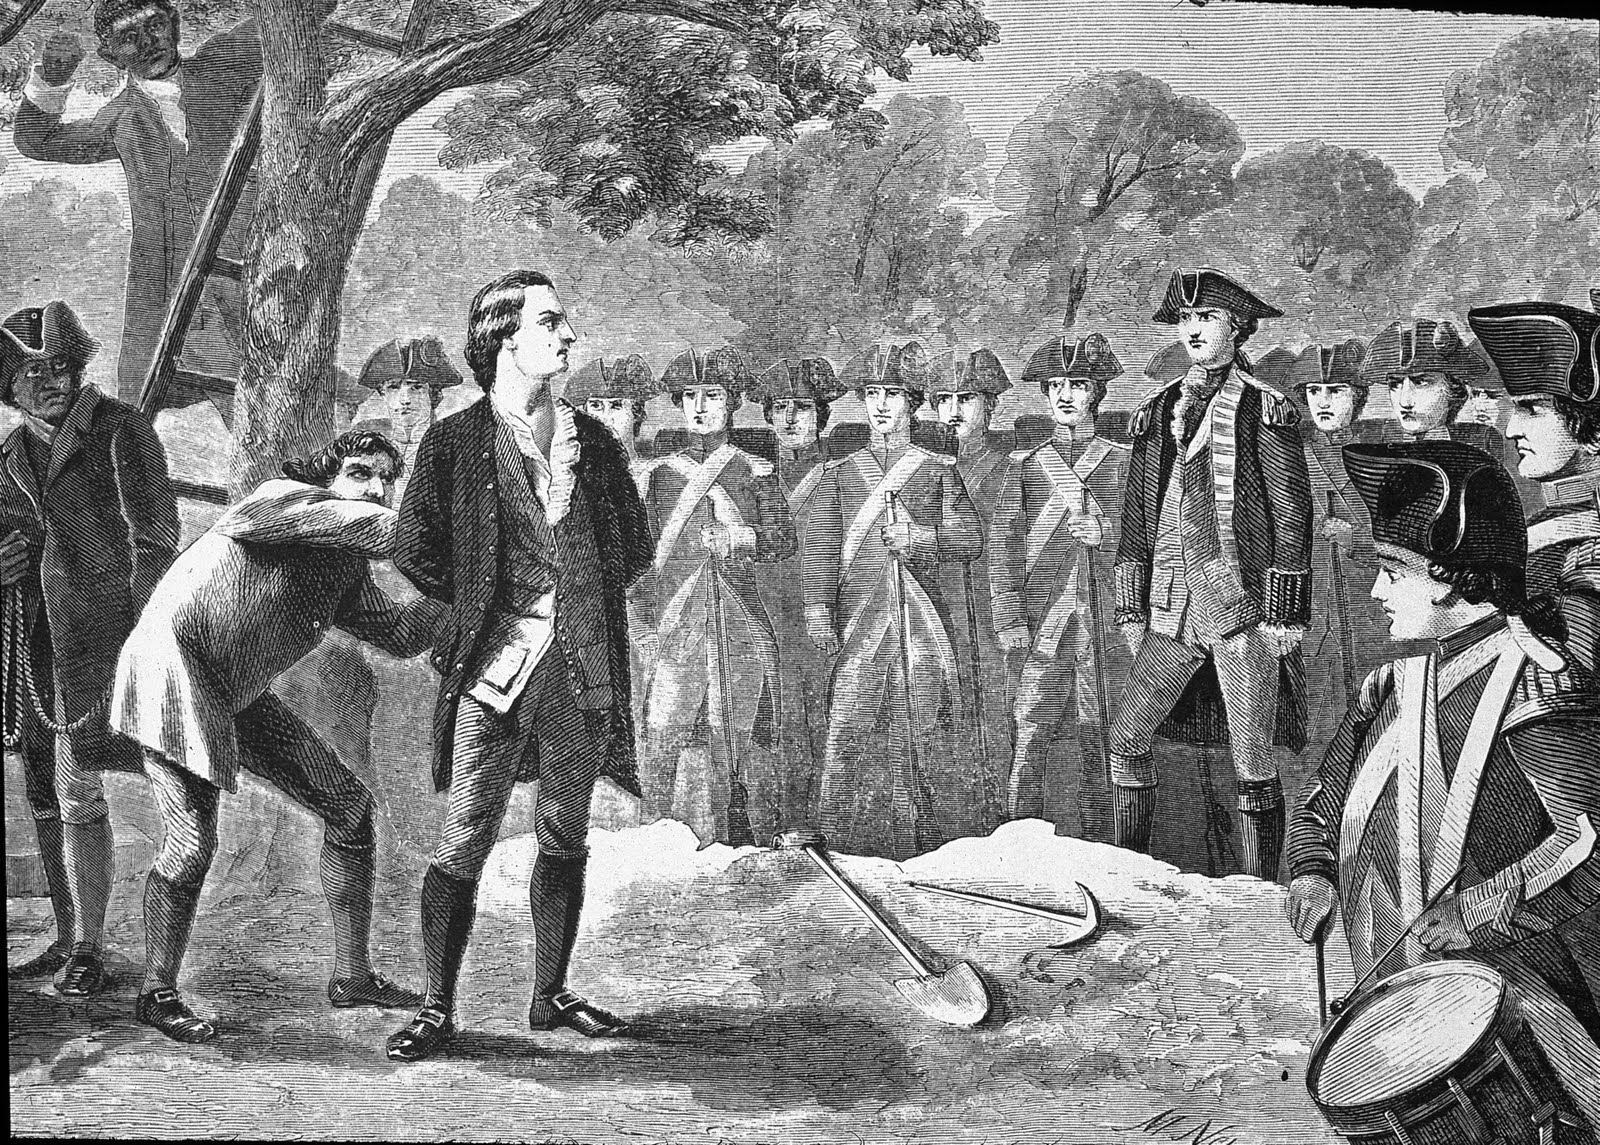 the dangers of being separated after the revolutionary war African americans also choose sides during the revolutionary war they were promised freedom if they fought for the king of england james armistead lafayette , a slave from virginia, served in the continental army and was given his freedom after the war.